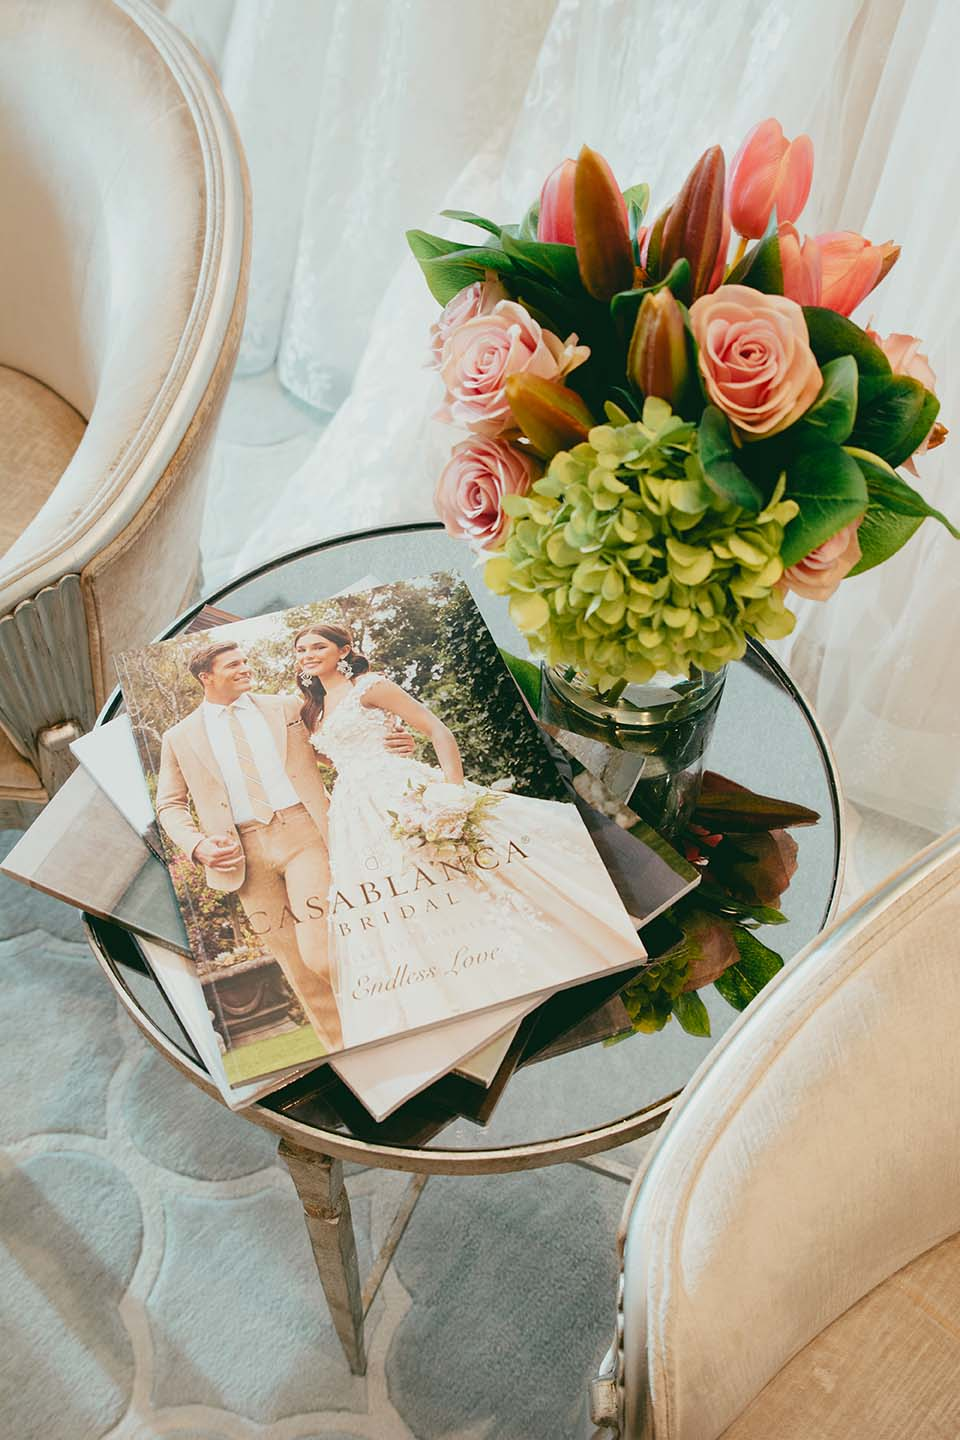 Casablanca Bridal. Endless Love. Journal